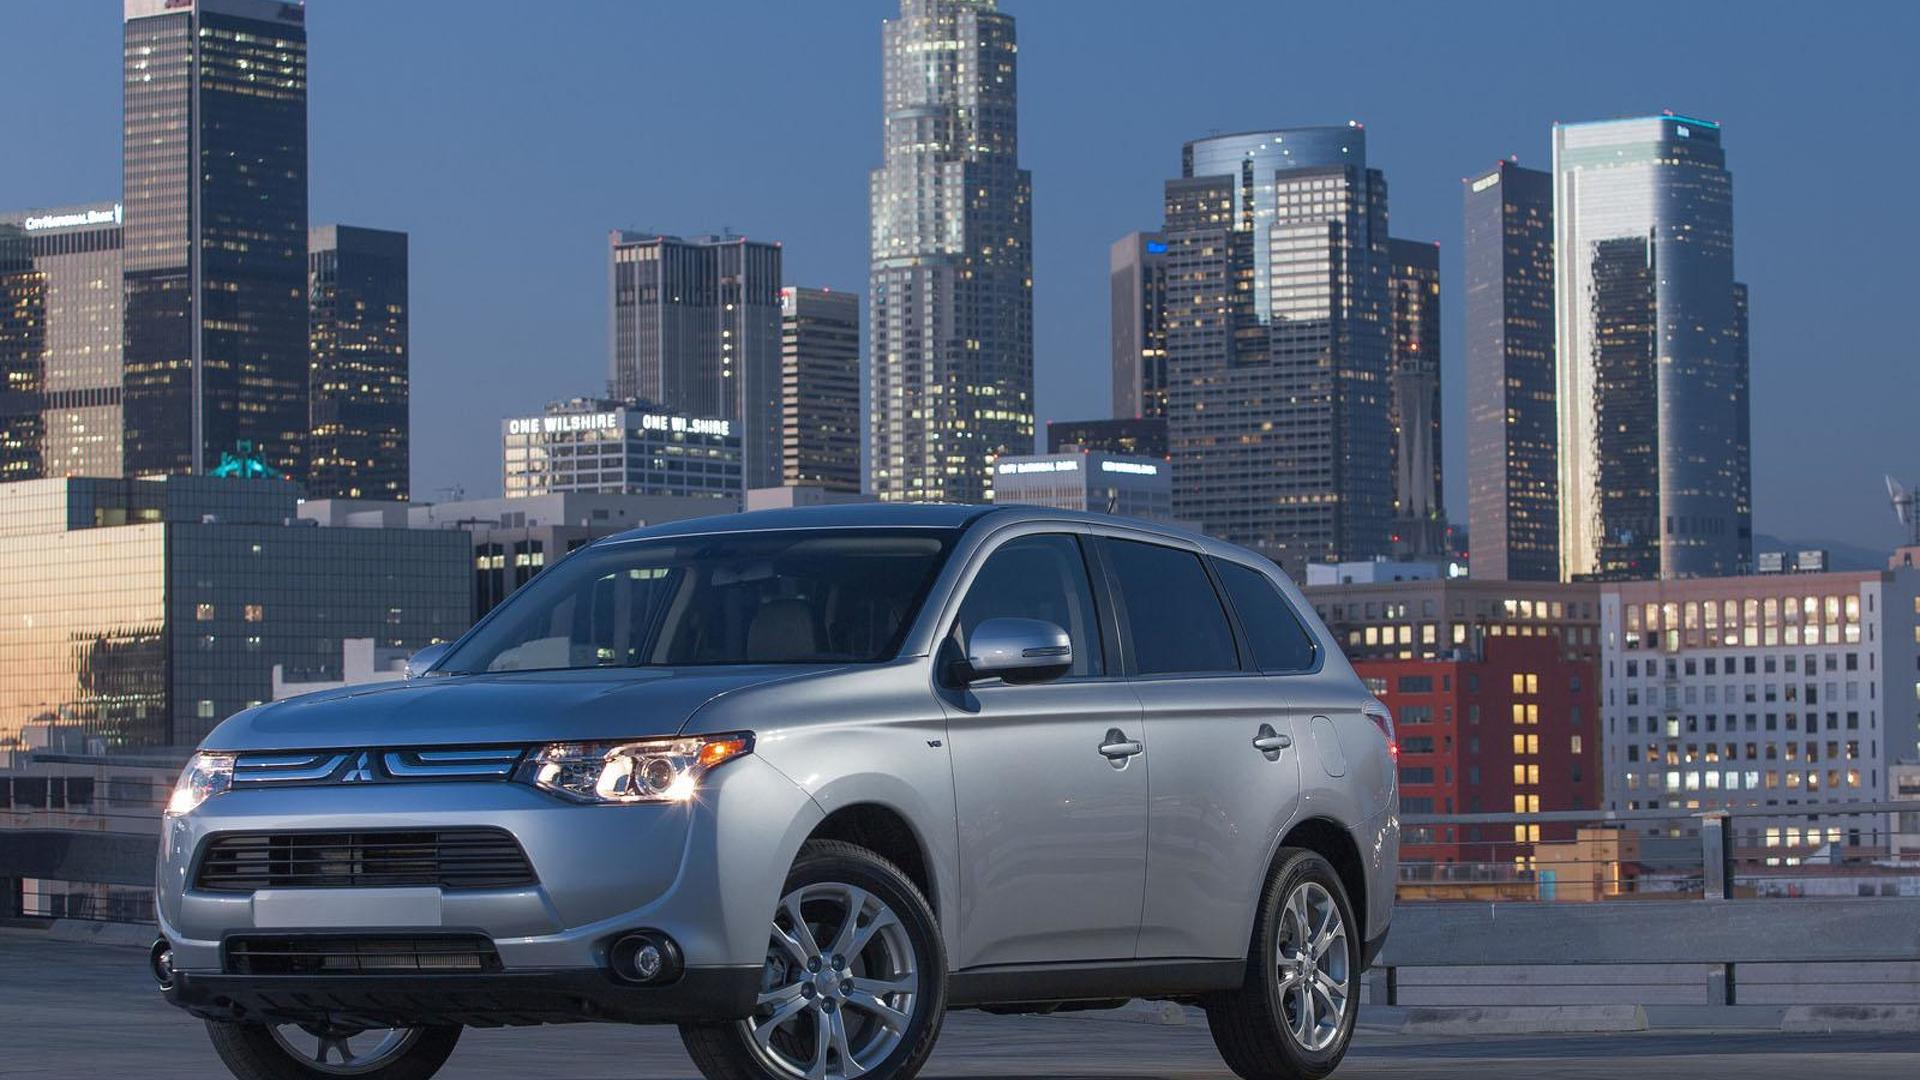 2014 Mitsubishi Outlander priced from 22,995 USD